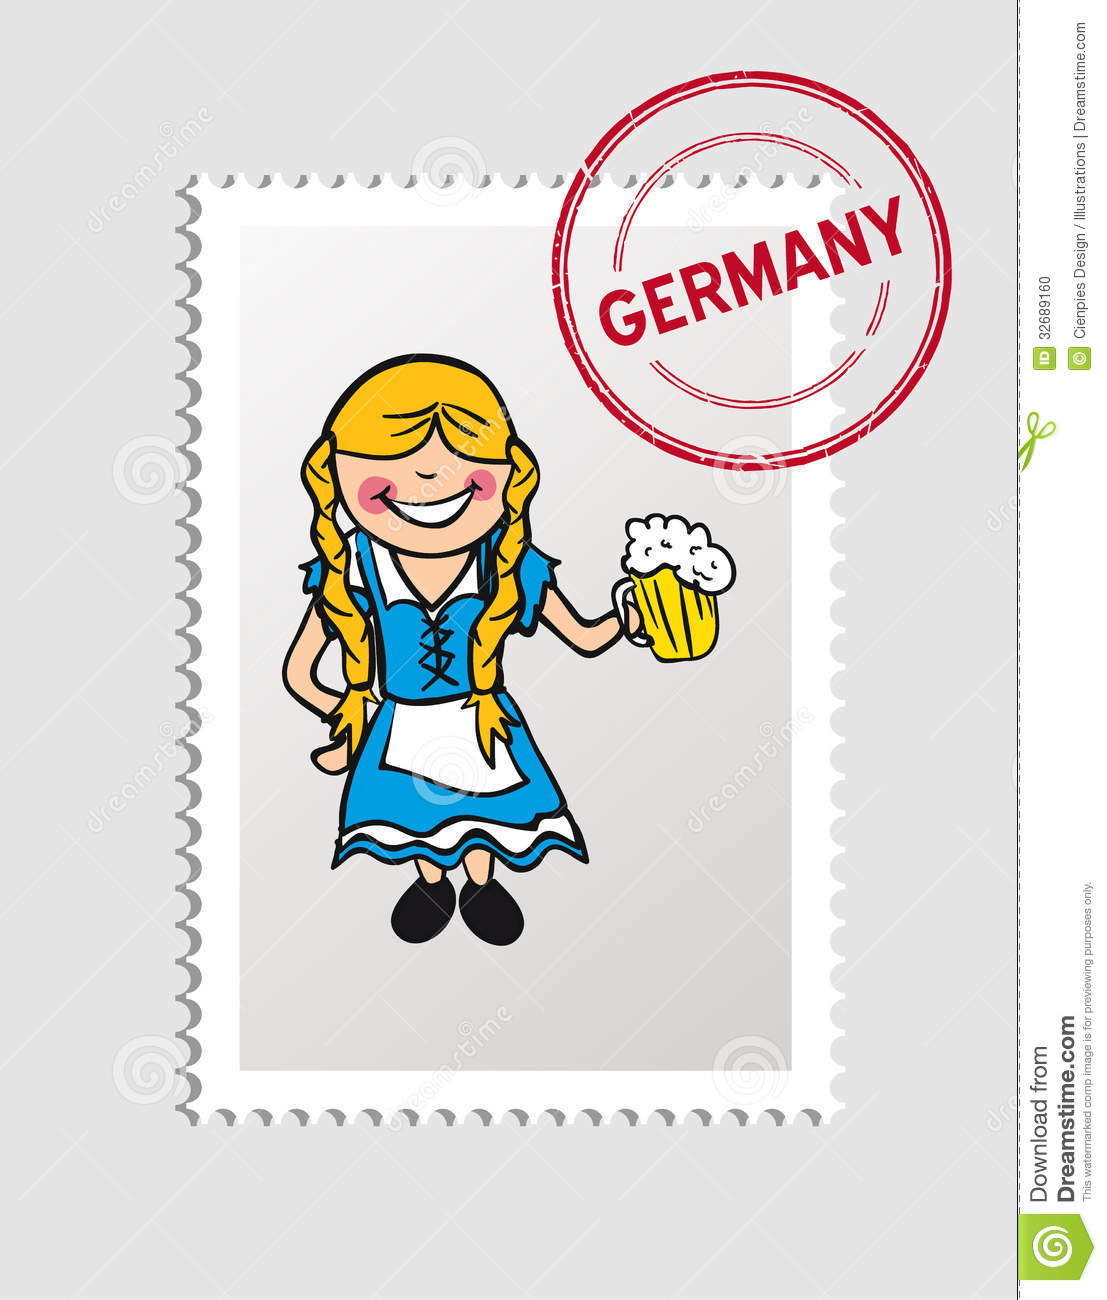 I Want To Visit Germany In German: Travel To Germany Stock Photo